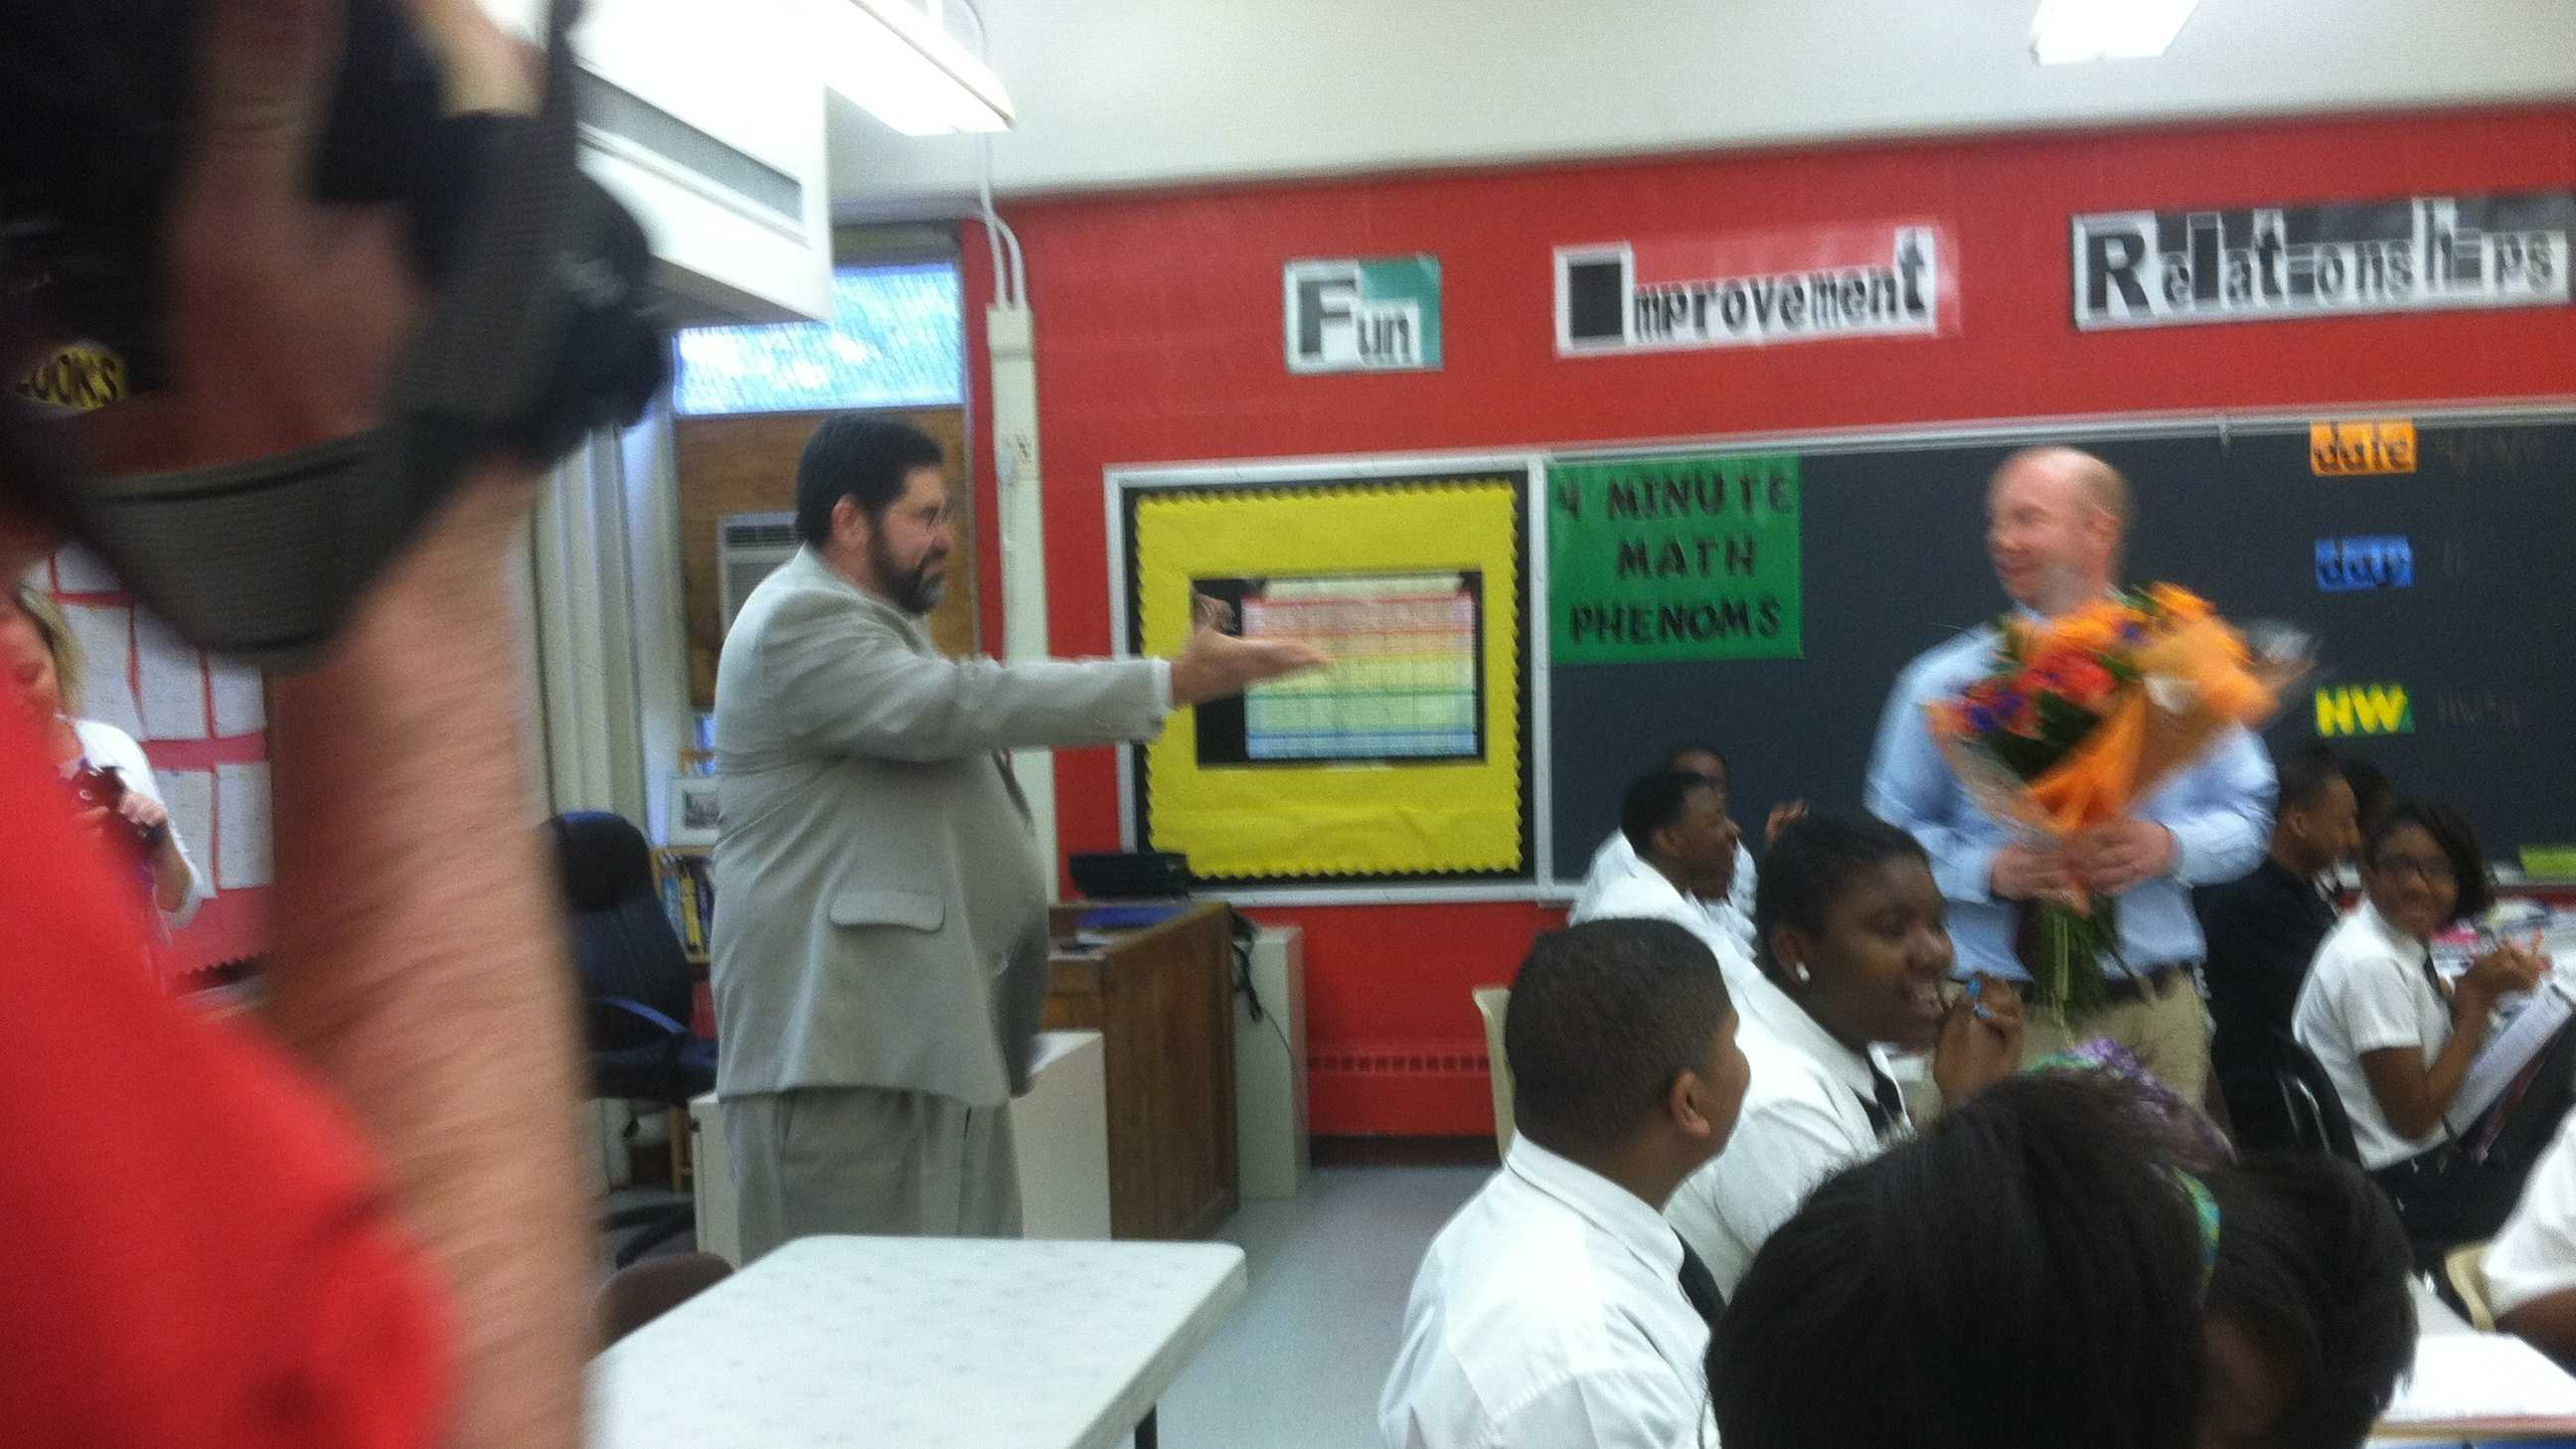 A Baltimore City charter school teacher gets a big surprise as he is honored with the district's Teacher of the Year award.